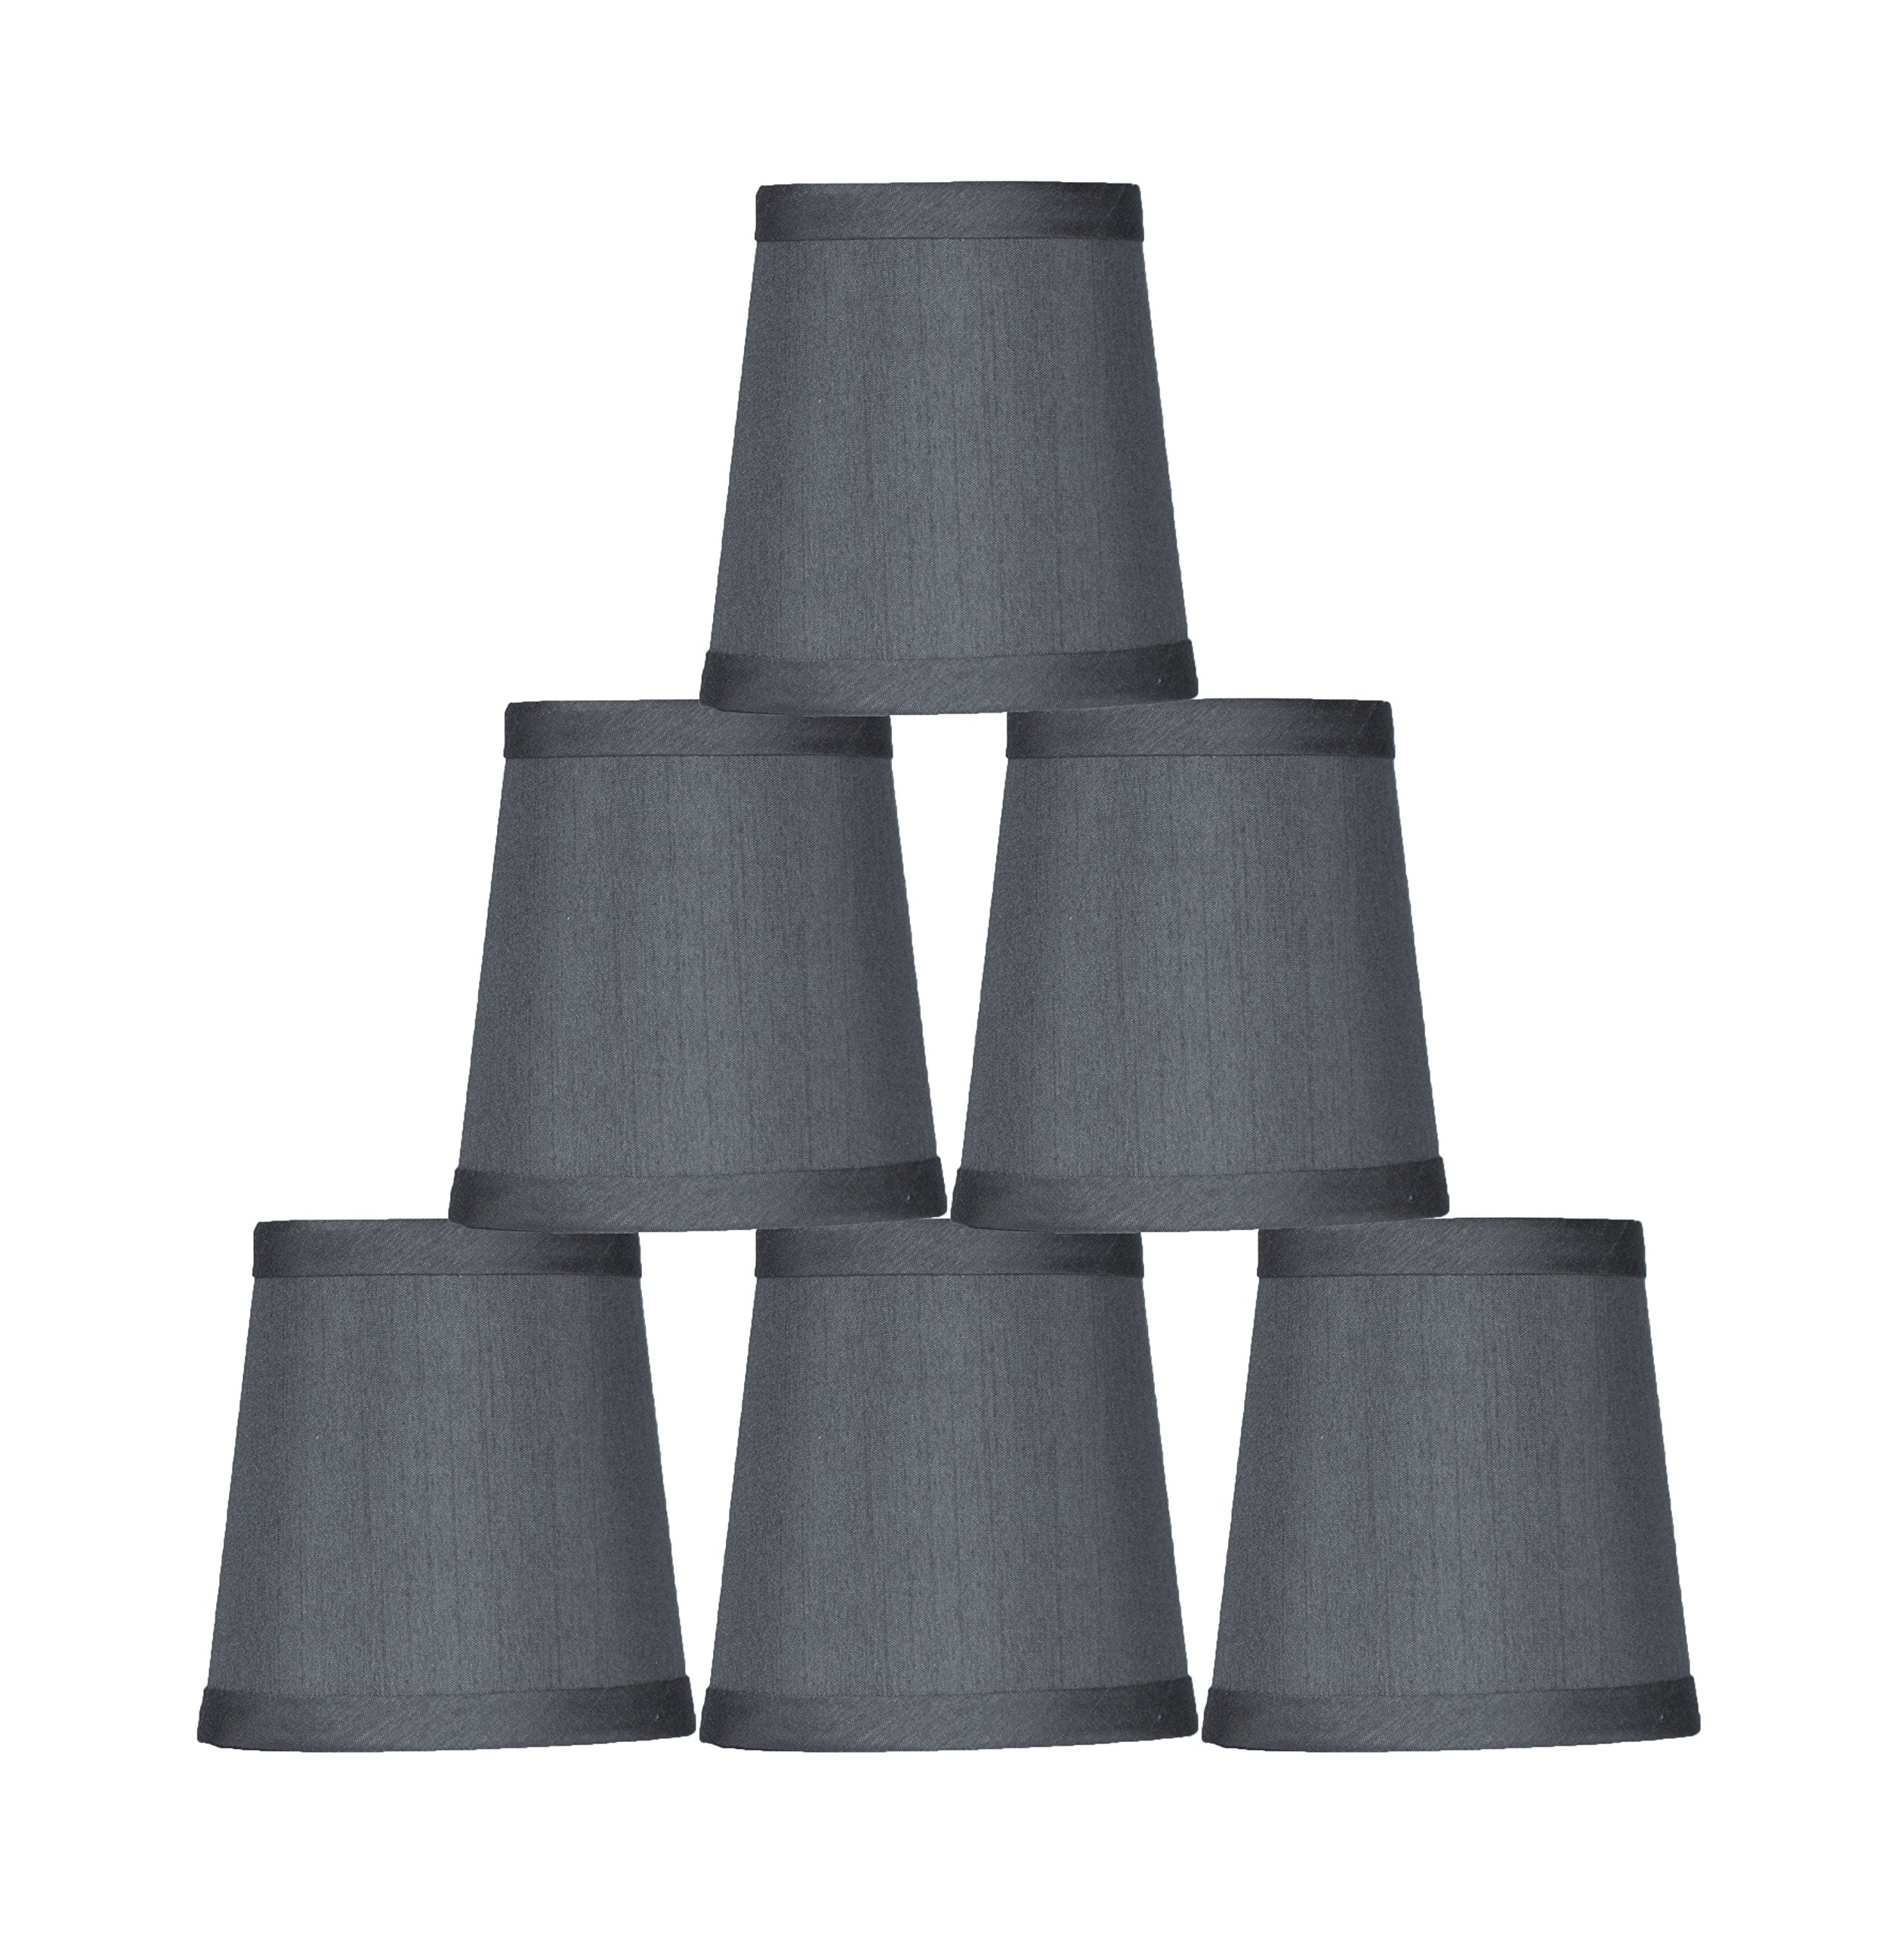 Urbanest Gray Mini Chandelier Lamp Shade, 3x4x4'', Hardback, Clip On, Set of 6 by Urbanest